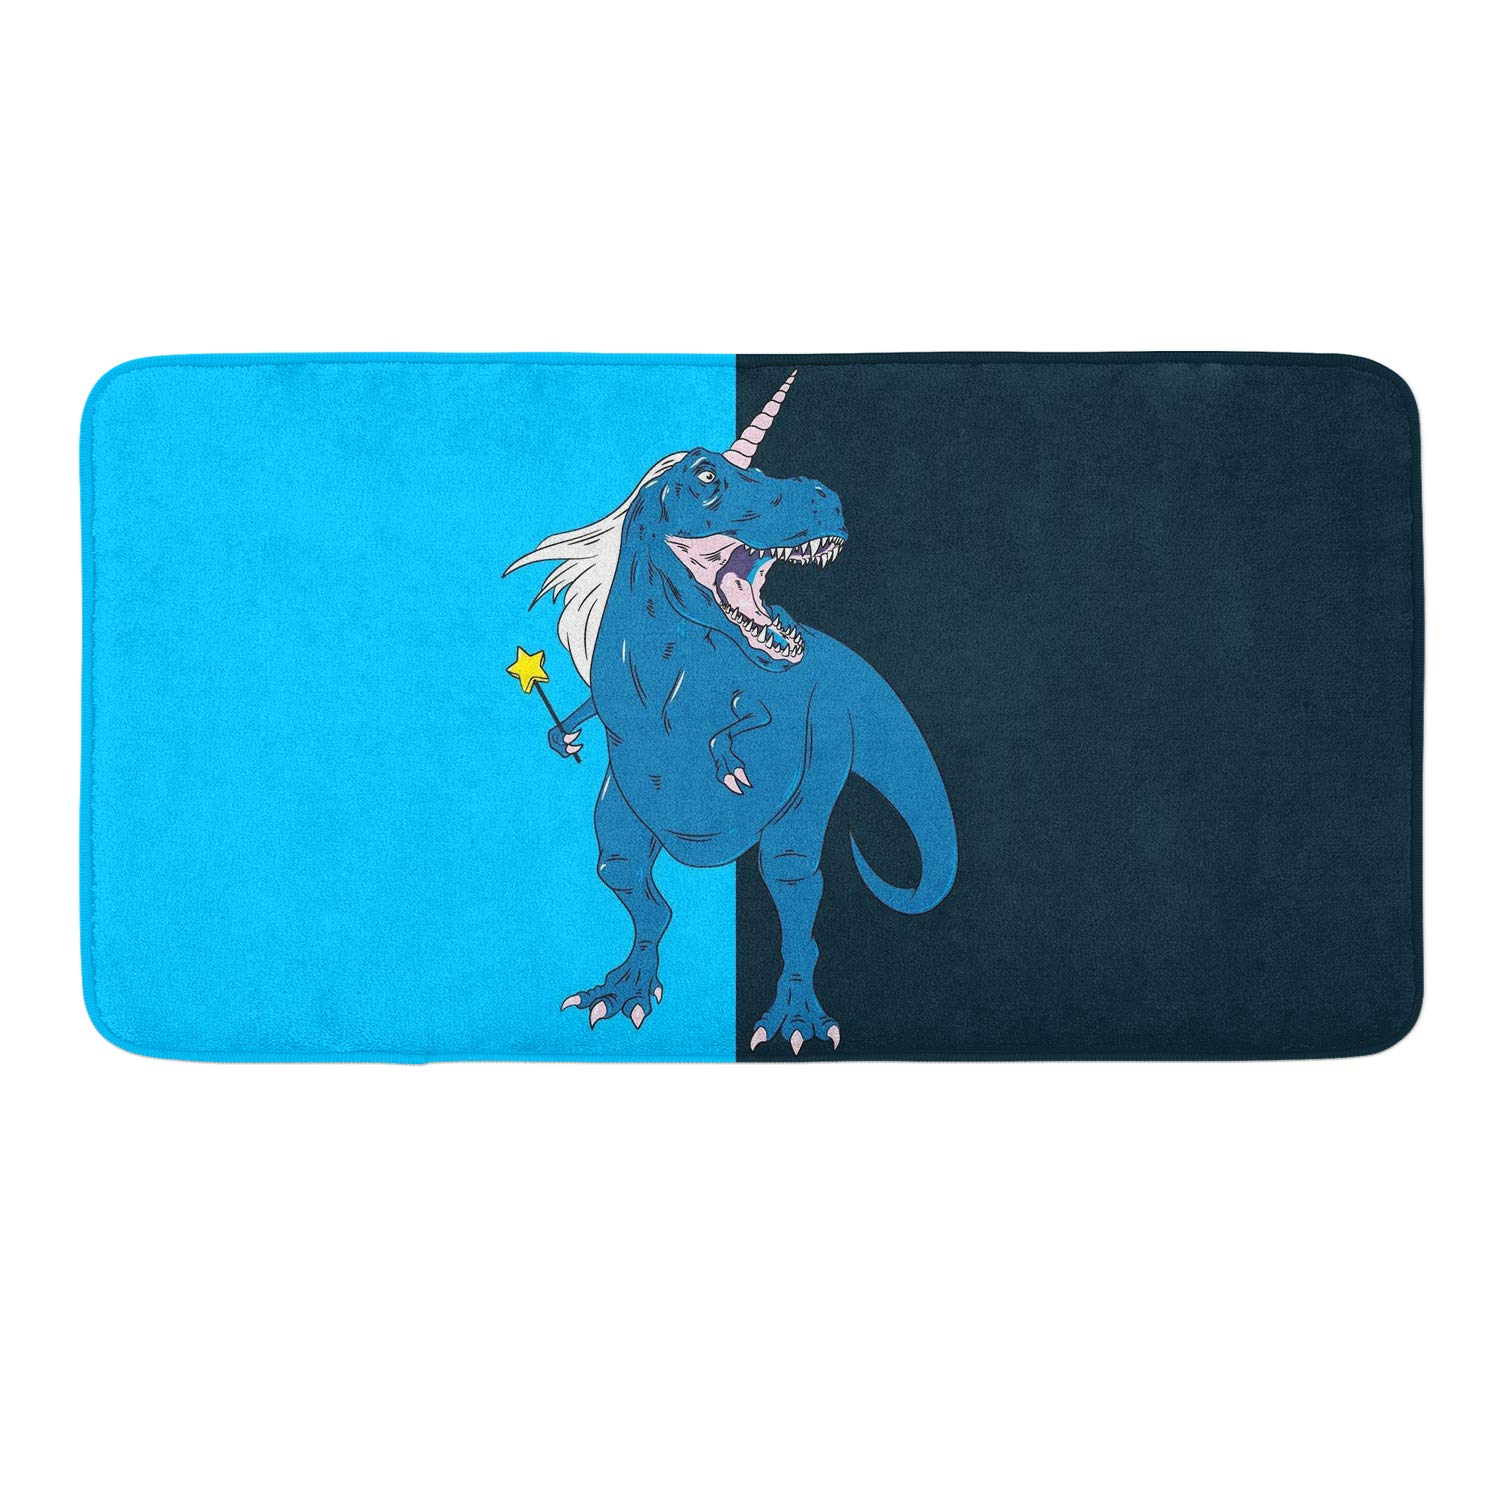 CIGOCI Non-Slip Memory Foam Bath Rugs, 3D Print Unicorn Dinasaur - 18 x 36 Inch, Extra Absorbent,Soft,Duarable and Quick-Dry Shaggy Rugs